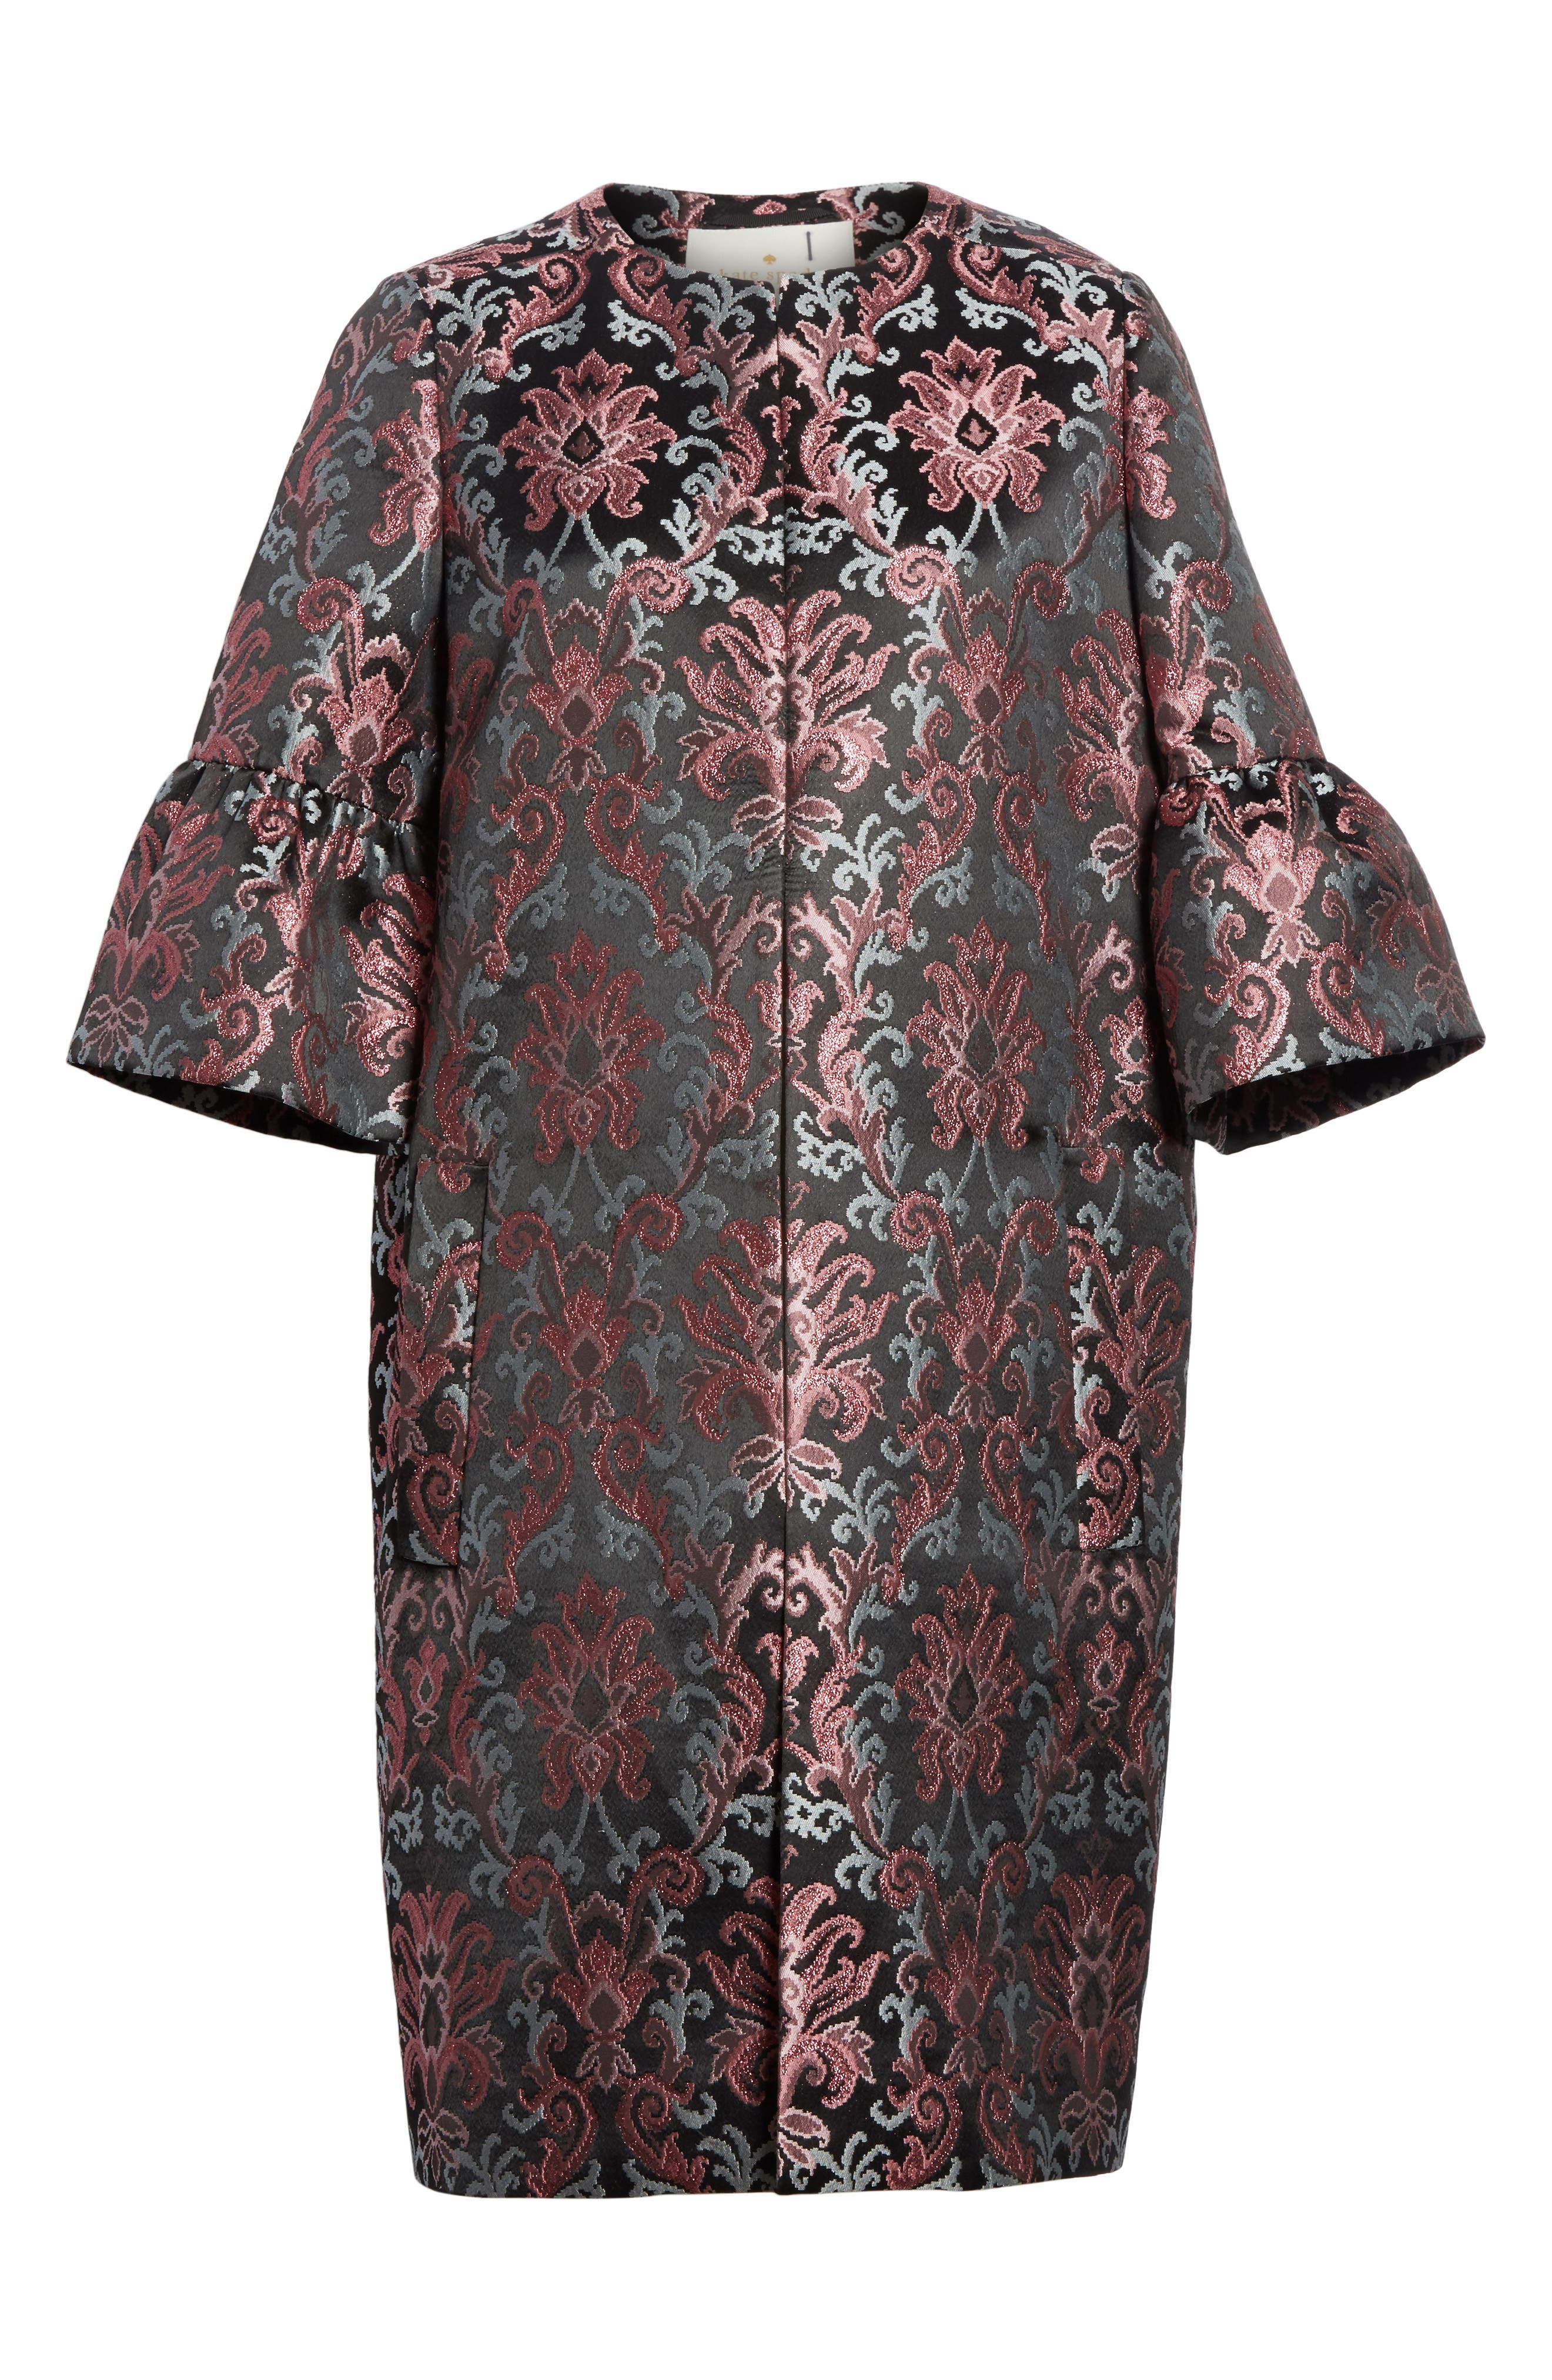 tapestry jacquard coat,                             Alternate thumbnail 5, color,                             004